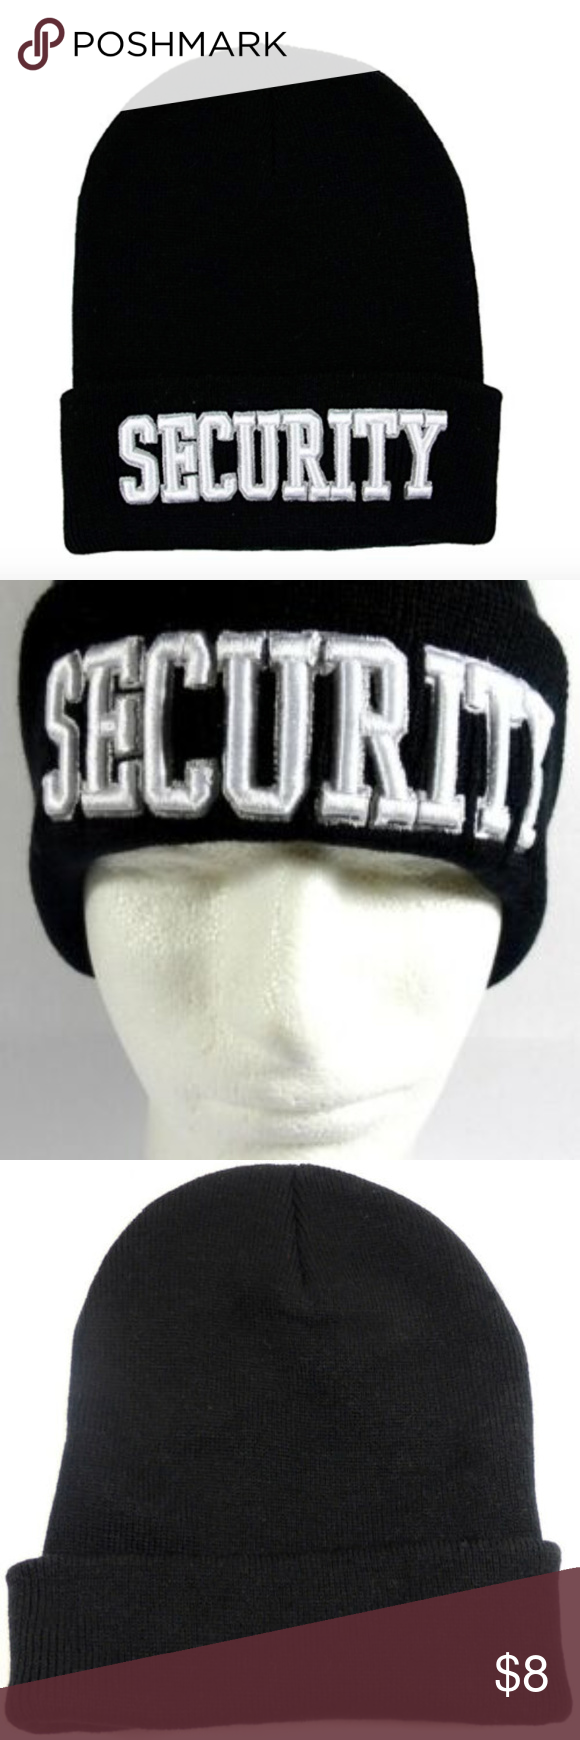 Security Officer Black Cuffed Knit Beanie Black Cuff Knit Beanie Beanie